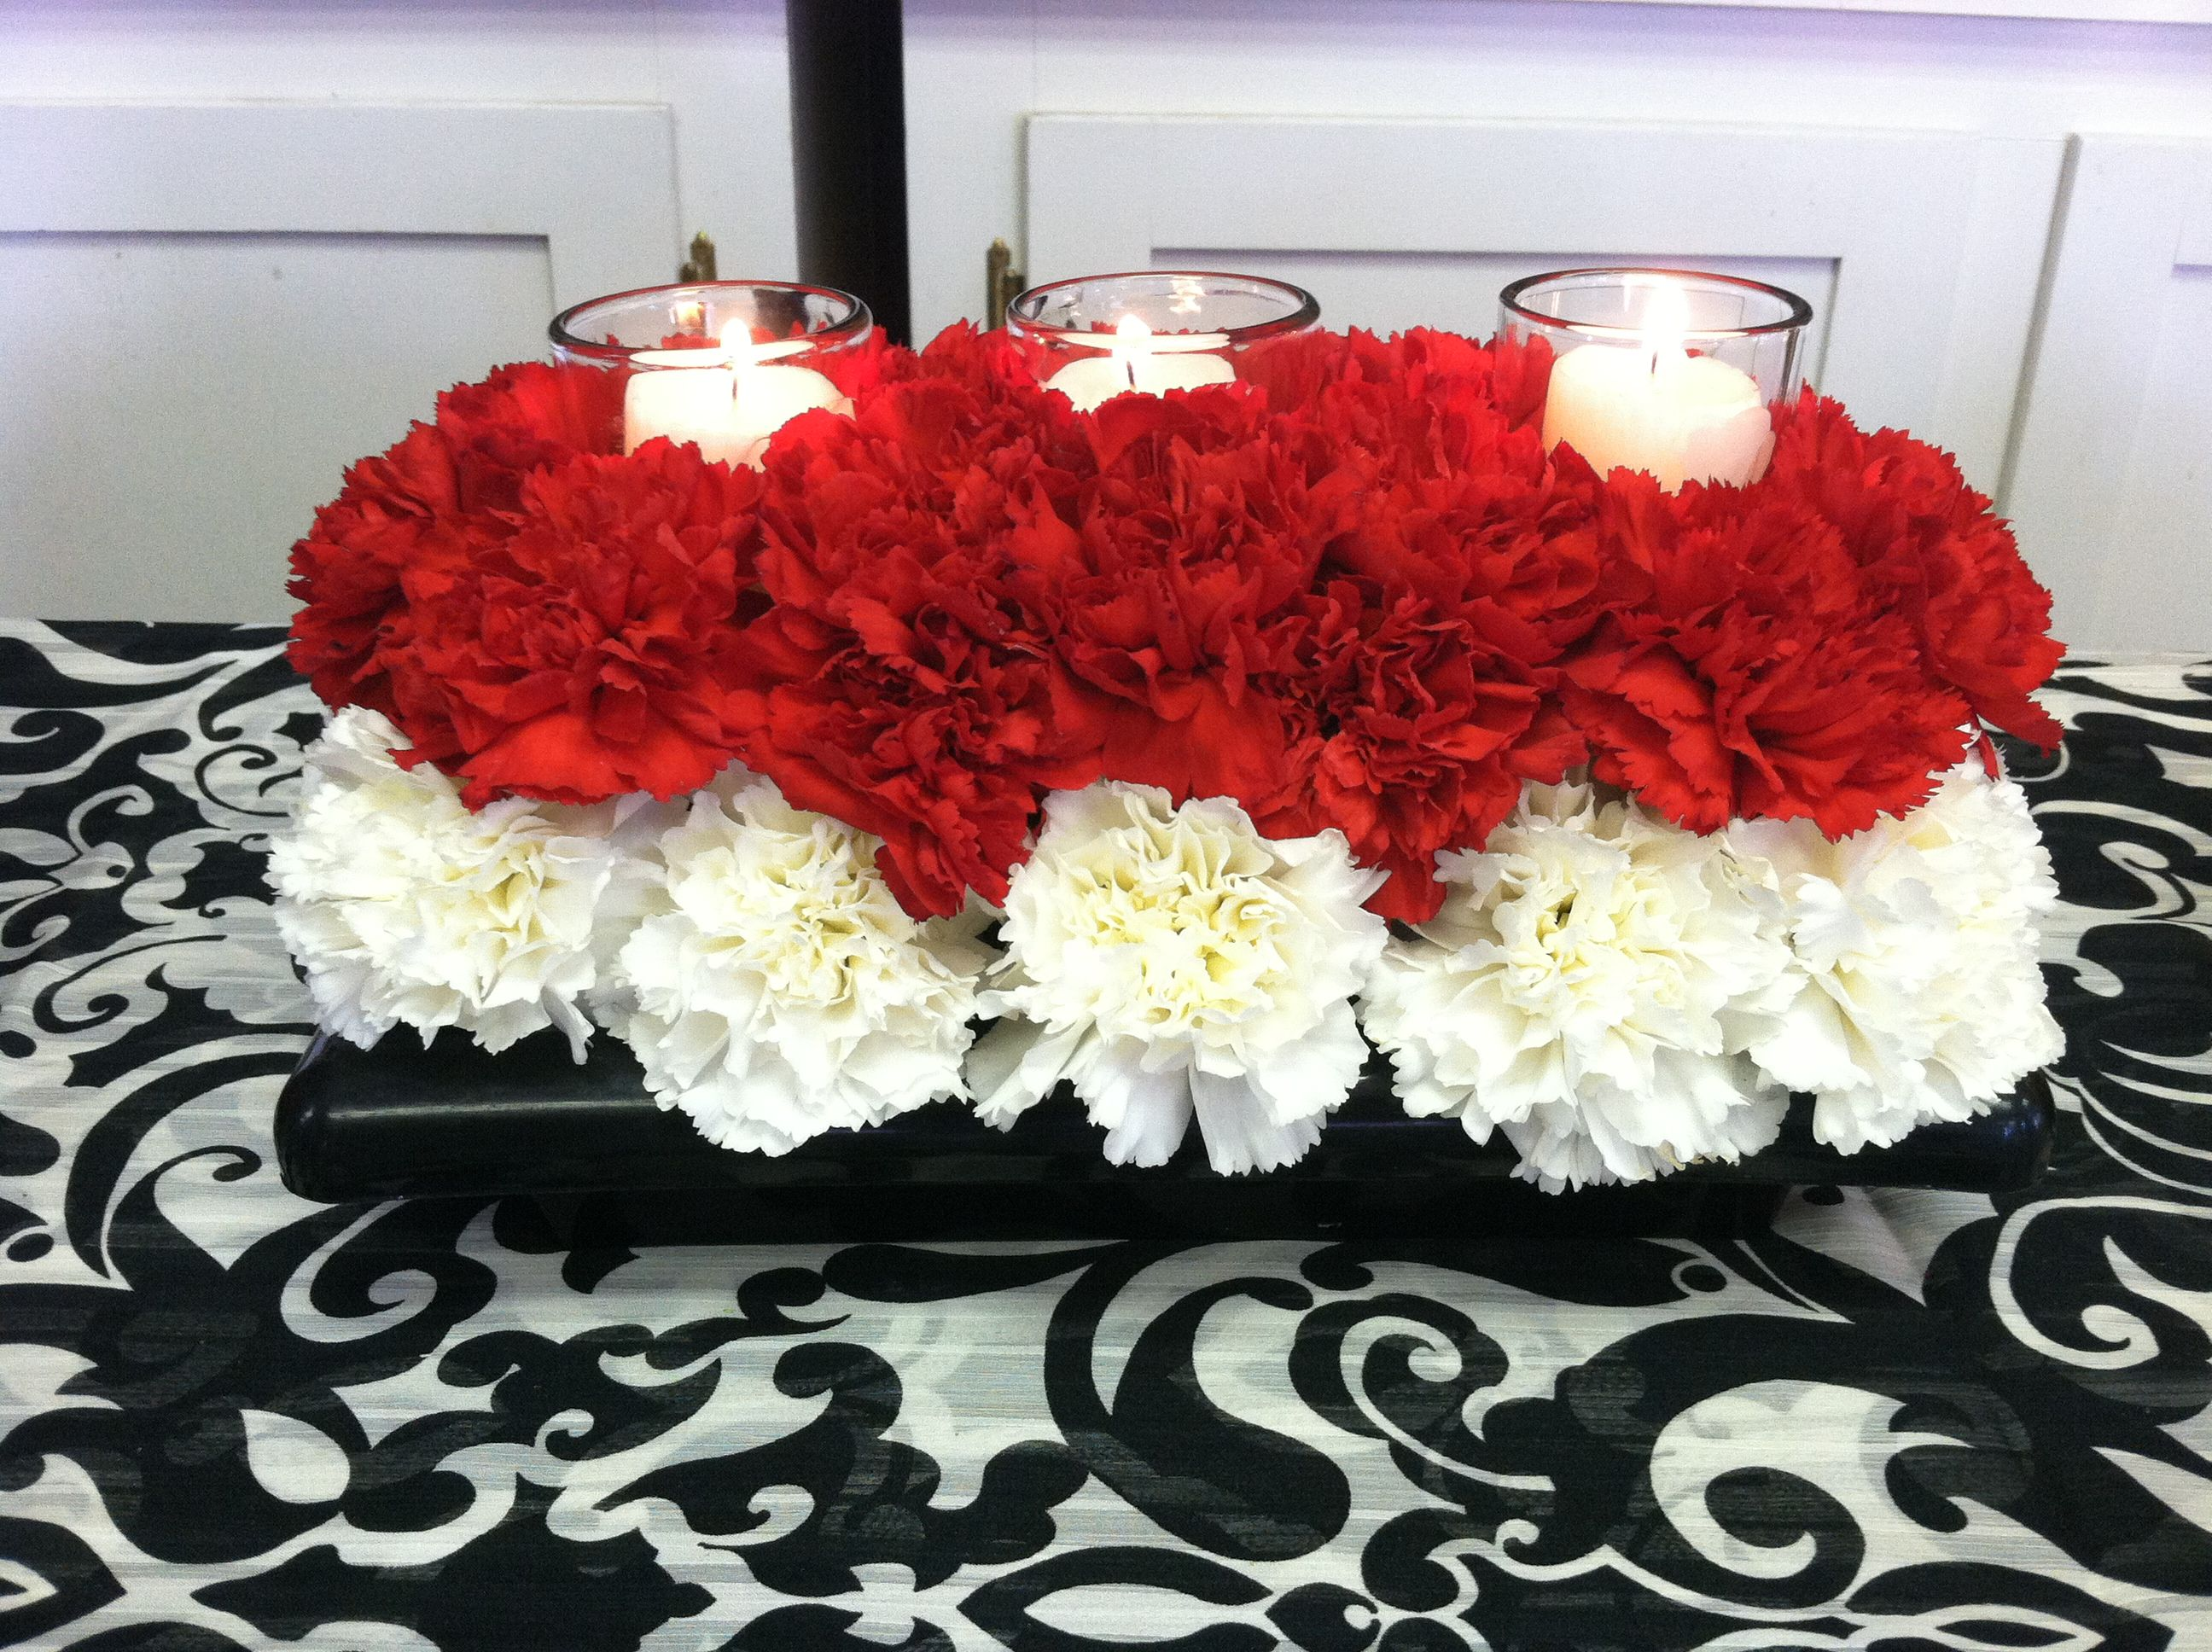 Red and white carnation centerpiece with candles perfect